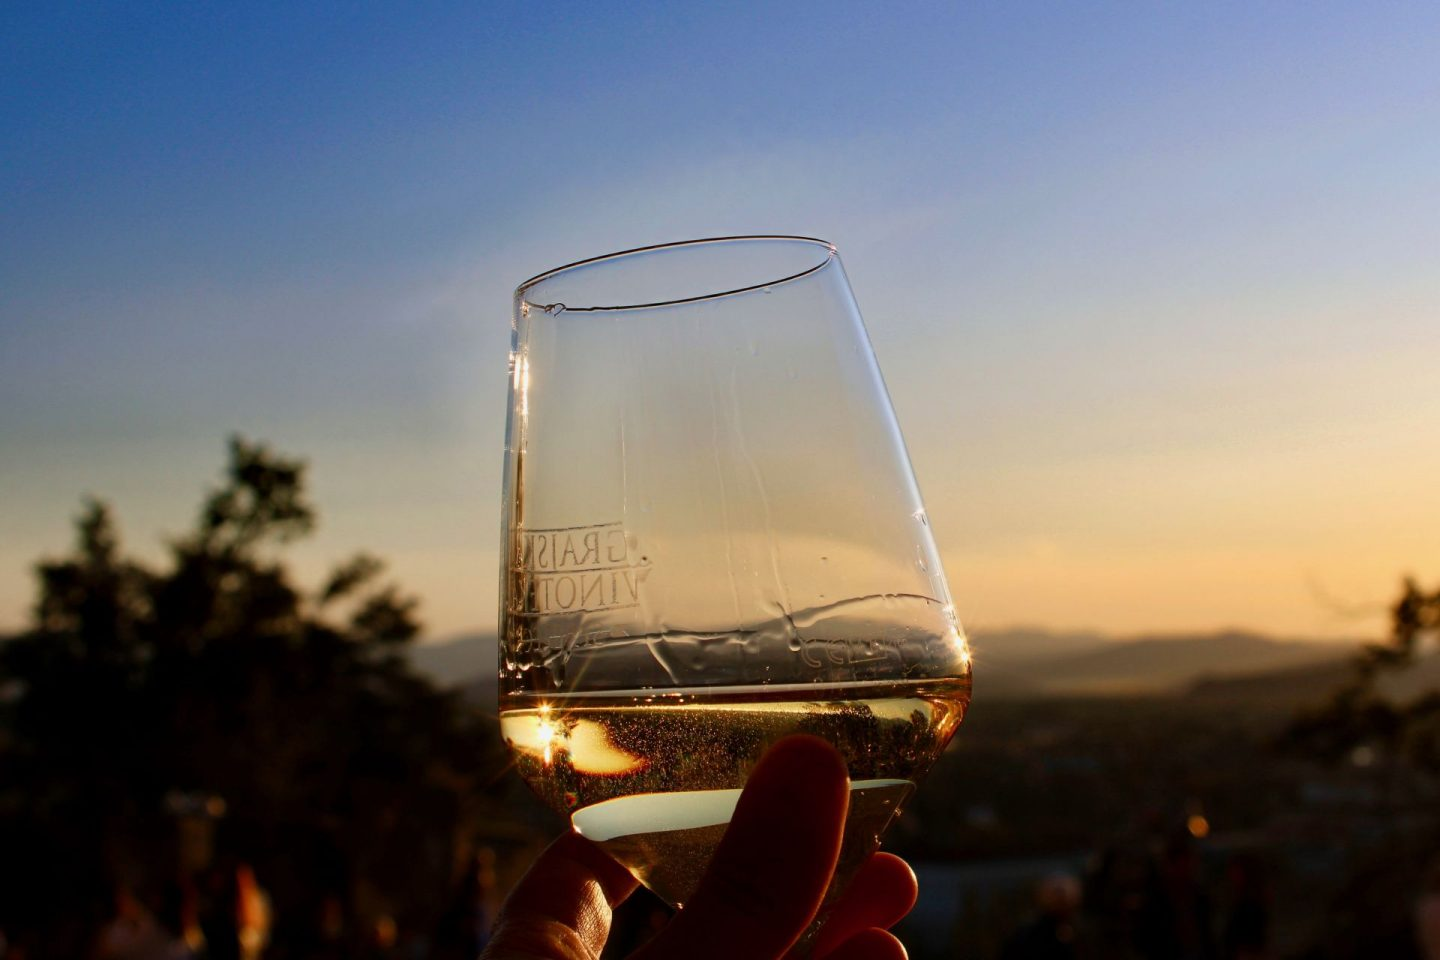 24 hours in Ljubljana food & wine: Sunset over Ljubljana from Strelec wine bar terrace